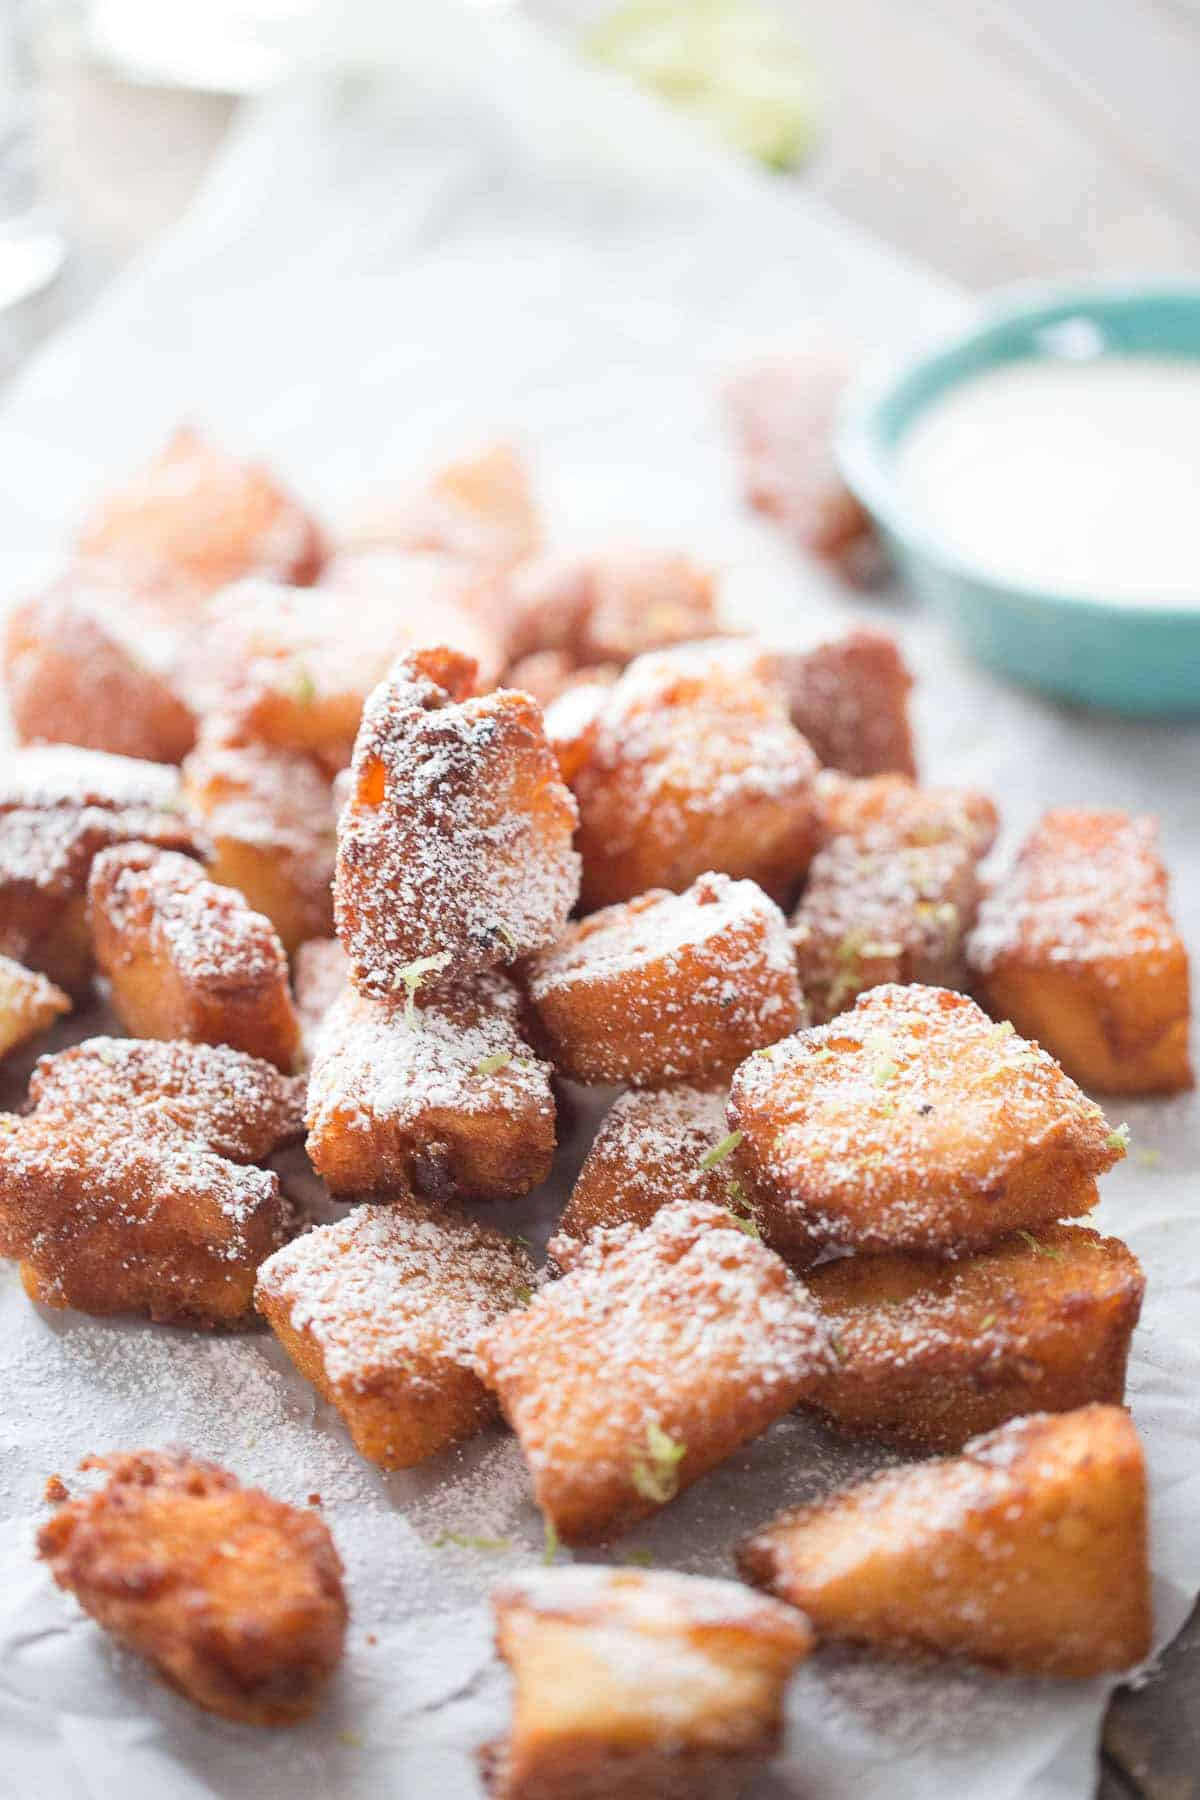 Fried tequila shots are sipped bites of angel good cake that have been dipped in tequila! I served these with a very simple lime dipping sauce; a little margarita taste with every bite!